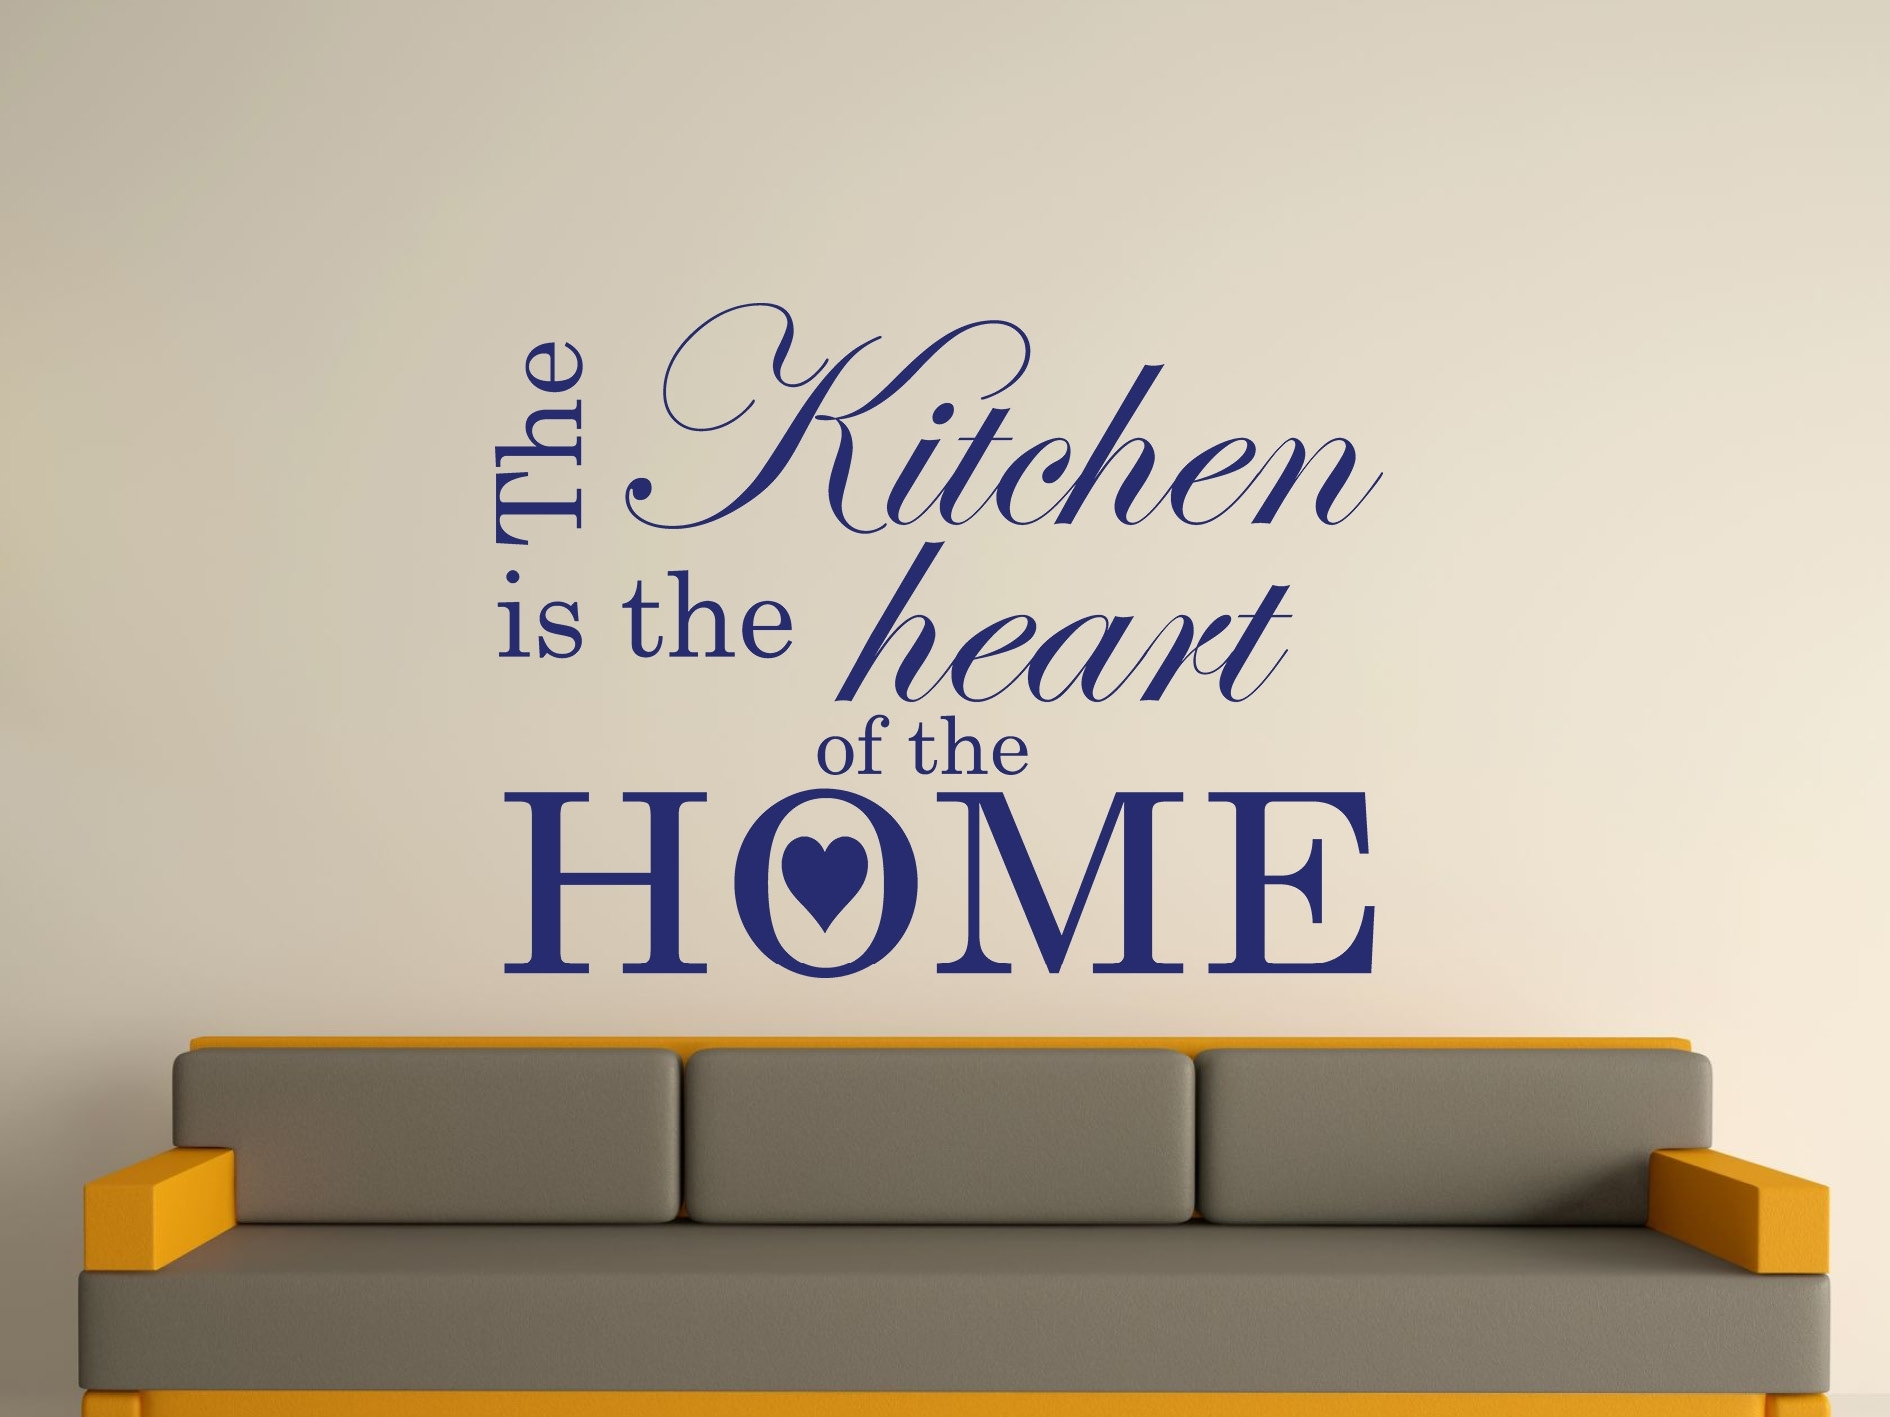 The Kitchen Is The Heart Of The Home Wall Art Sticker Text 3 Sizes Intended For 2017 Wall Art Stickers (Gallery 11 of 15)